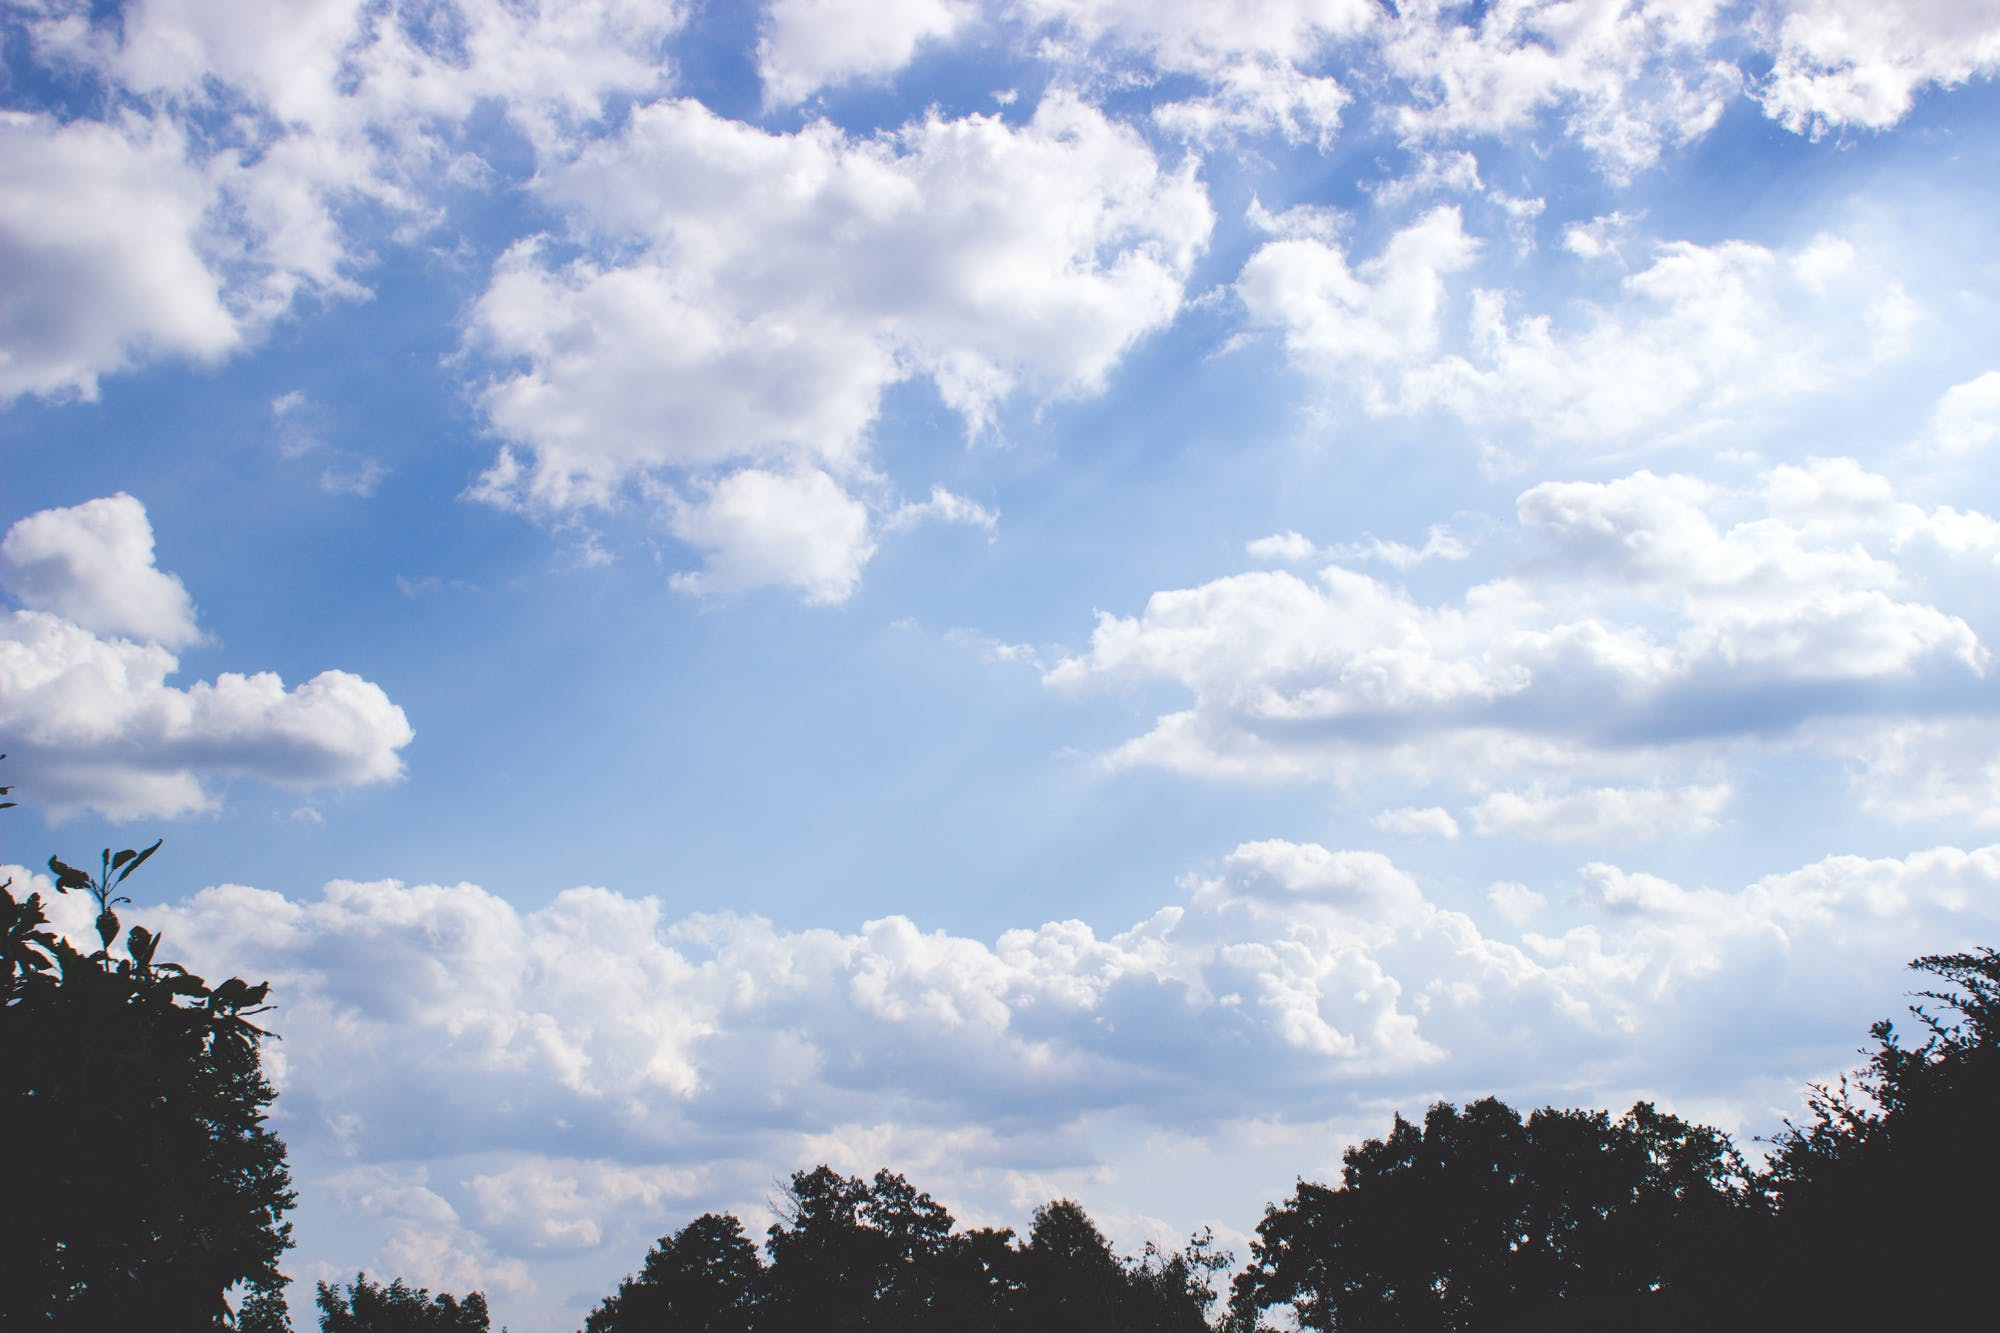 Free stock photo of sky, clouds, blue, summer